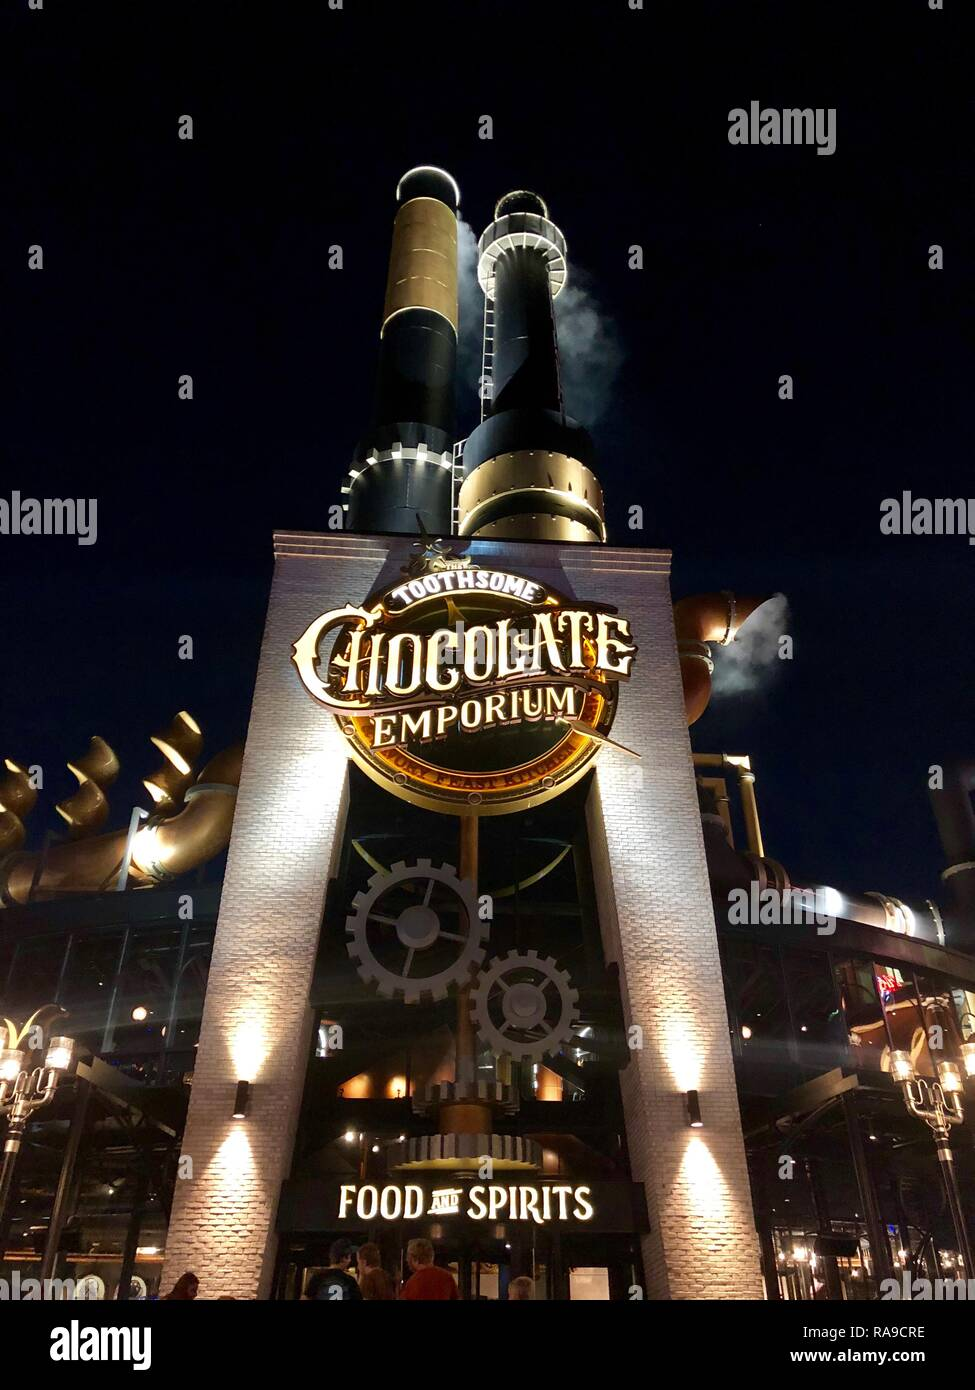 Toothsome Chocolate Emporium & Savory Feast Kitchen - Stock Image